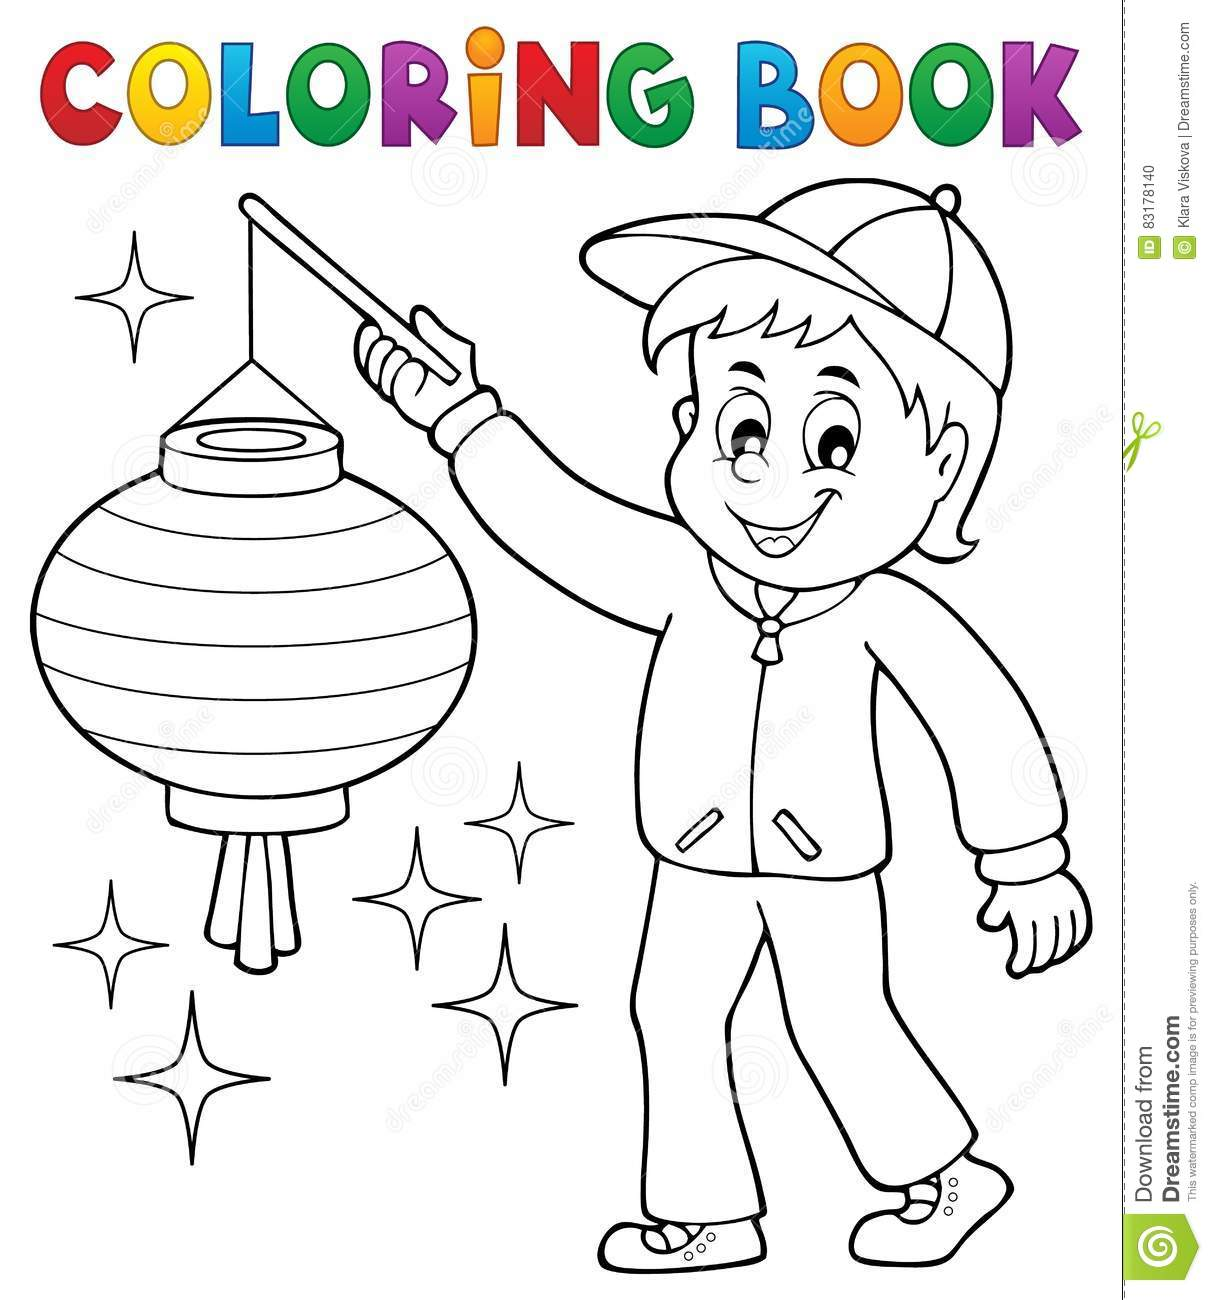 coloring book boy with paper lantern stock vector image 83178140 - Coloring Book Paper Stock